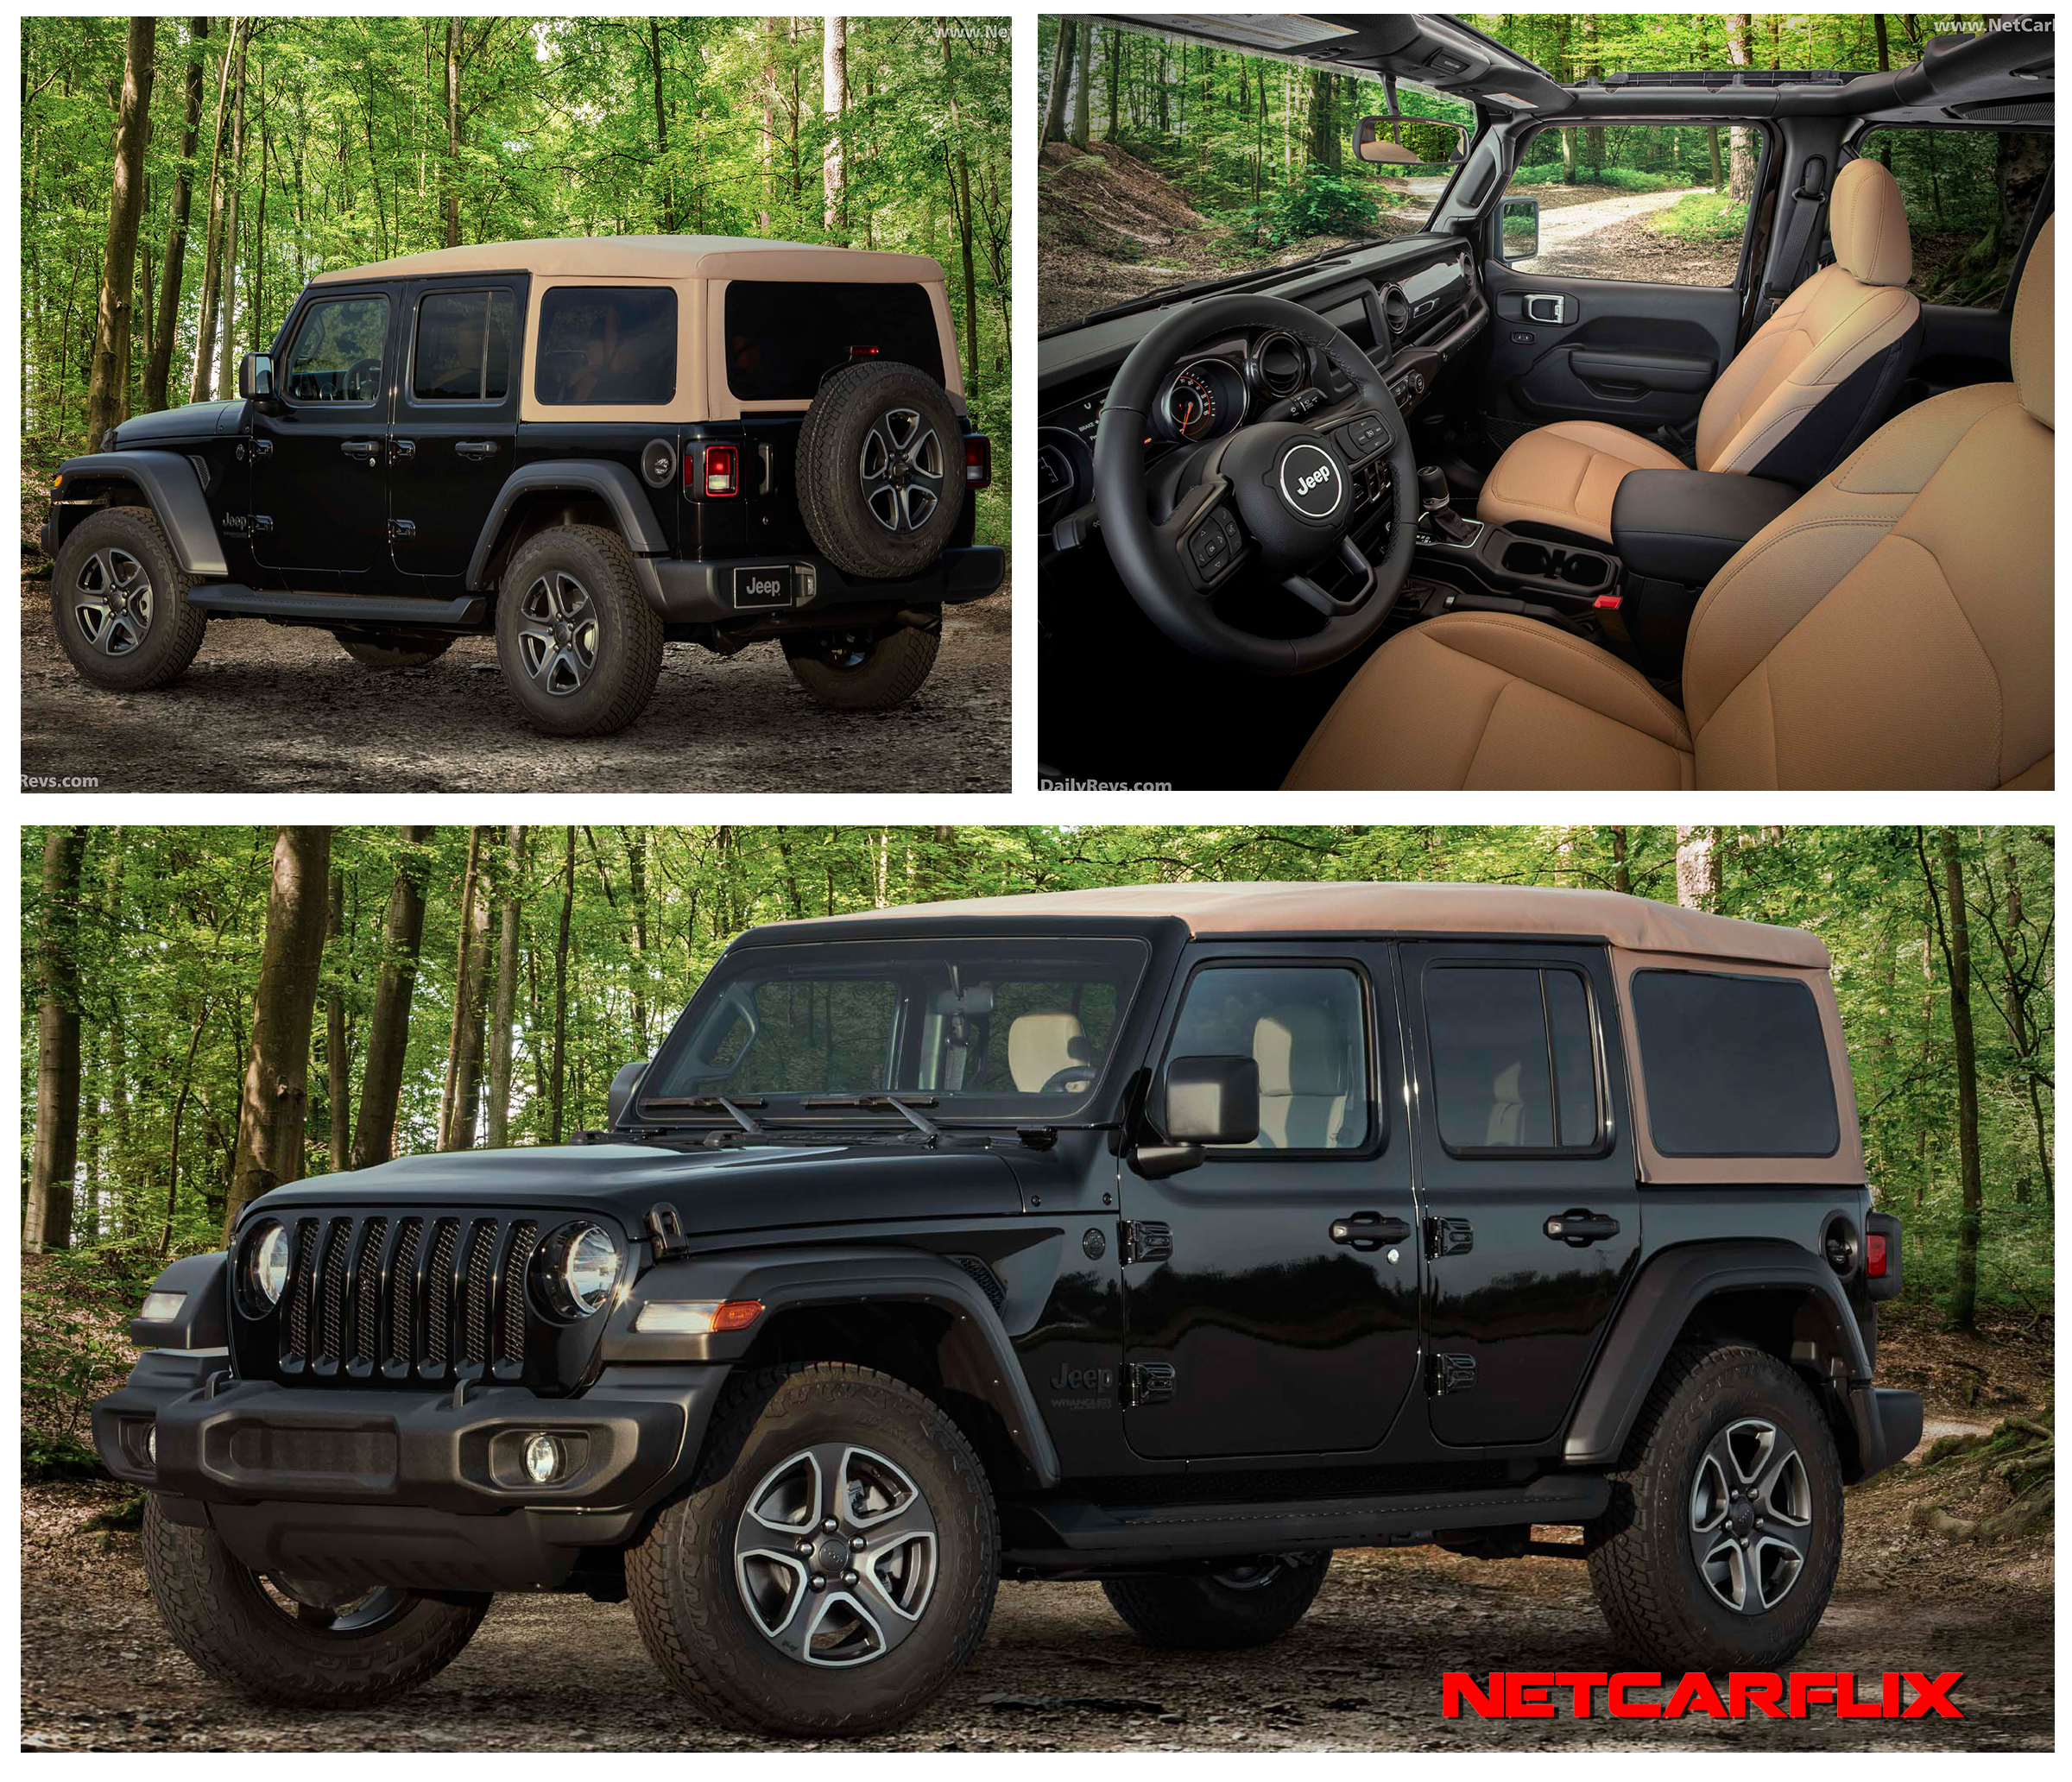 2020 Jeep Wrangler Black Tan Edition Hd Pictures Videos Specs Information Dailyrevs